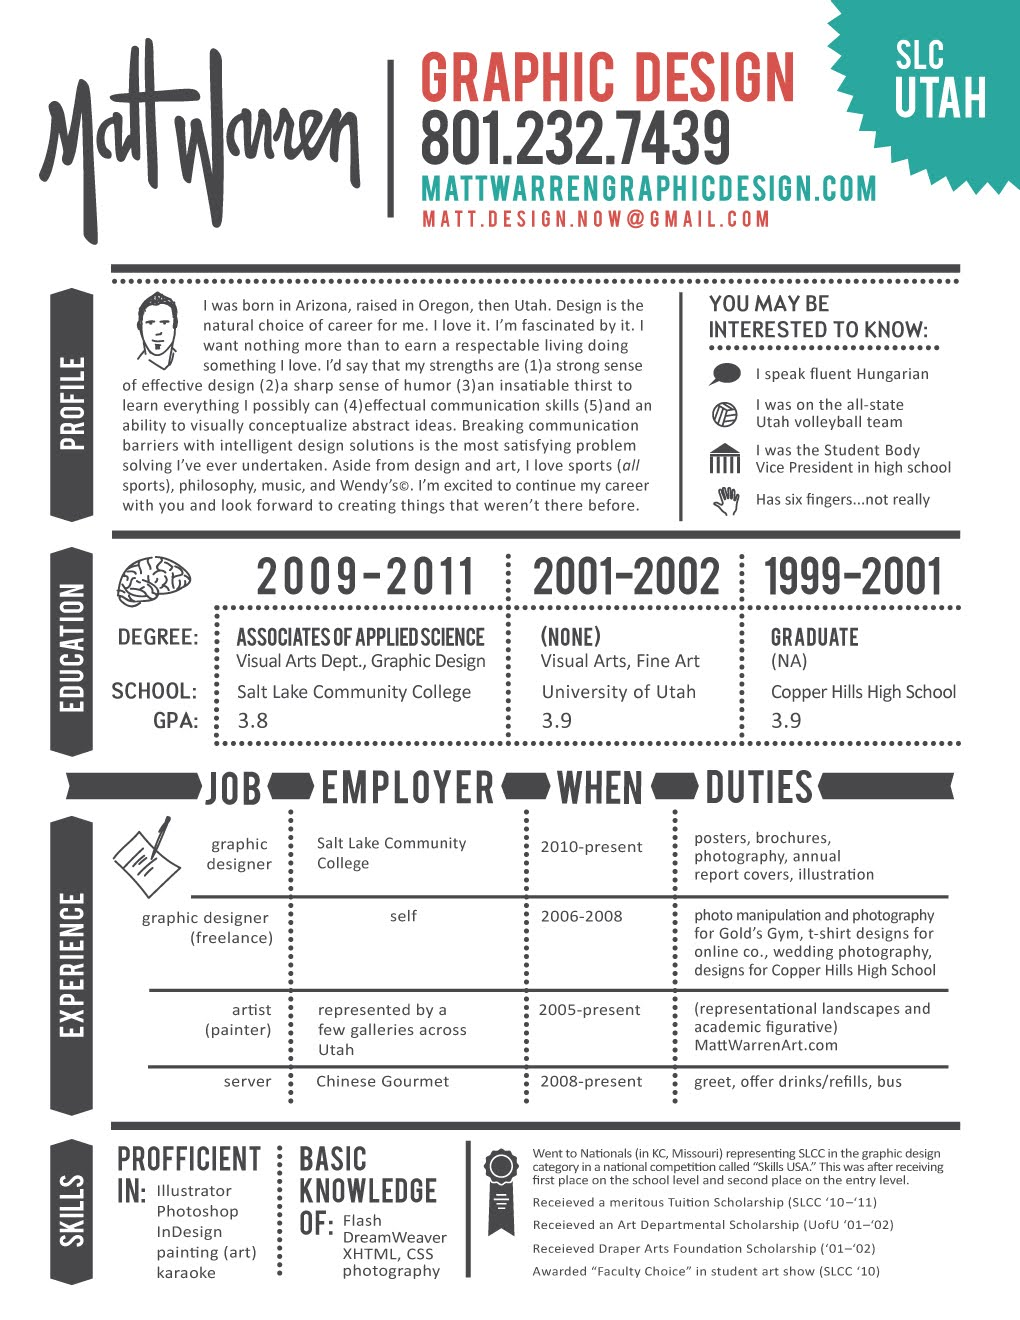 Opposenewapstandardsus  Personable  Images About Hire Me On Pinterest  Graphic Designer Resume  With Fair  Images About Hire Me On Pinterest  Graphic Designer Resume Resume Design And Resume With Divine Pl Sql Developer Resume Also Resume Free Template In Addition Sample Resume Summary Statements And How Many Pages Should My Resume Be As Well As Talent Resume Additionally Resume Maker Software From Pinterestcom With Opposenewapstandardsus  Fair  Images About Hire Me On Pinterest  Graphic Designer Resume  With Divine  Images About Hire Me On Pinterest  Graphic Designer Resume Resume Design And Resume And Personable Pl Sql Developer Resume Also Resume Free Template In Addition Sample Resume Summary Statements From Pinterestcom